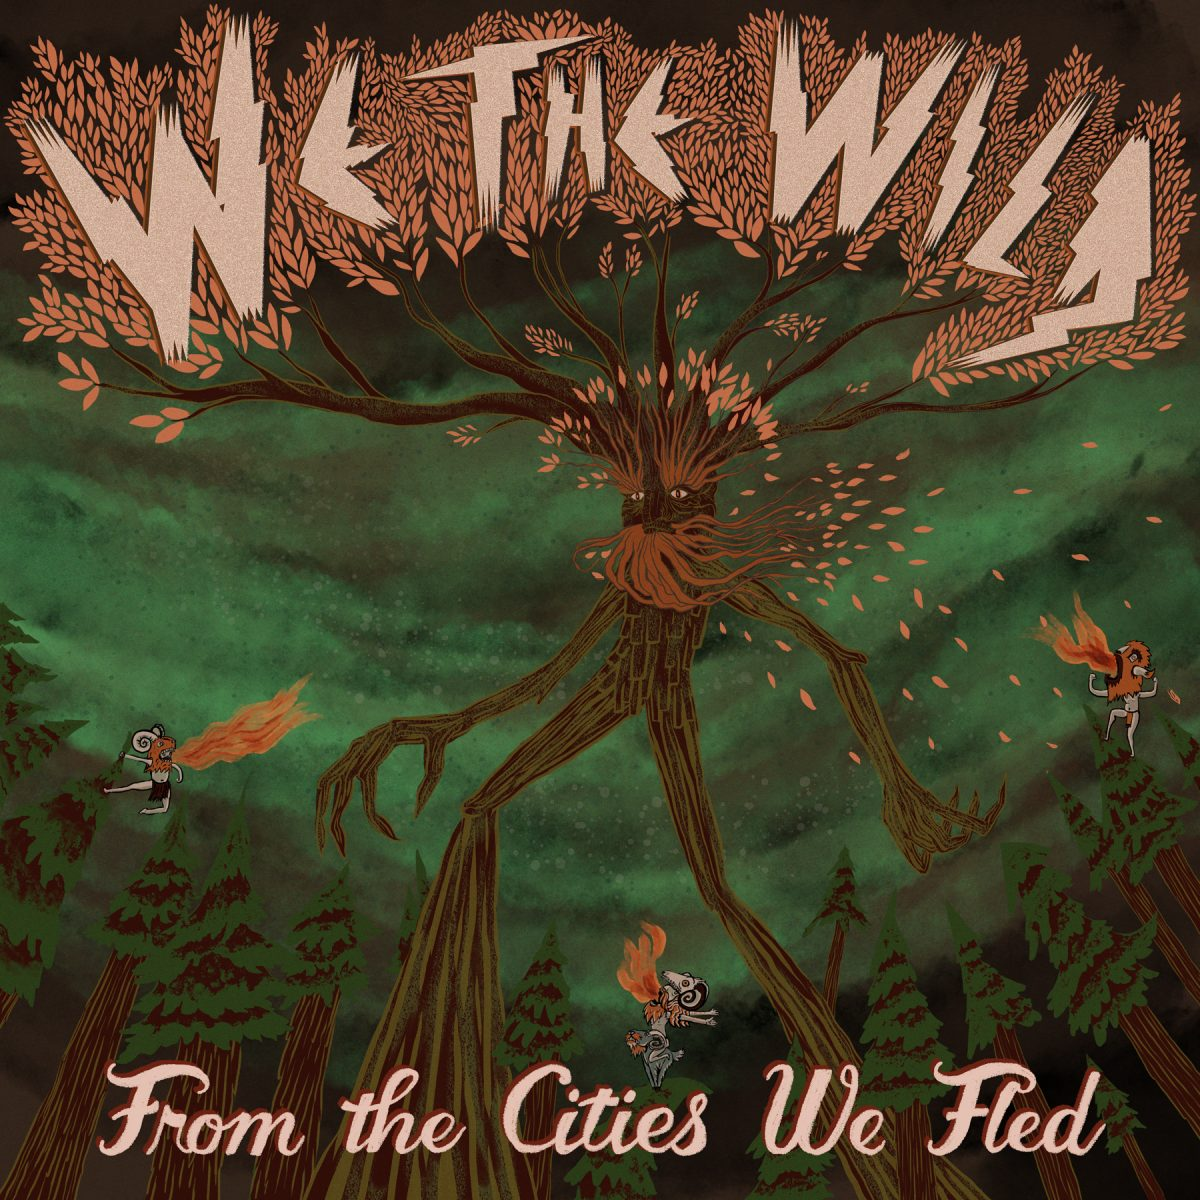 We The Wild - From the Cities We Fled